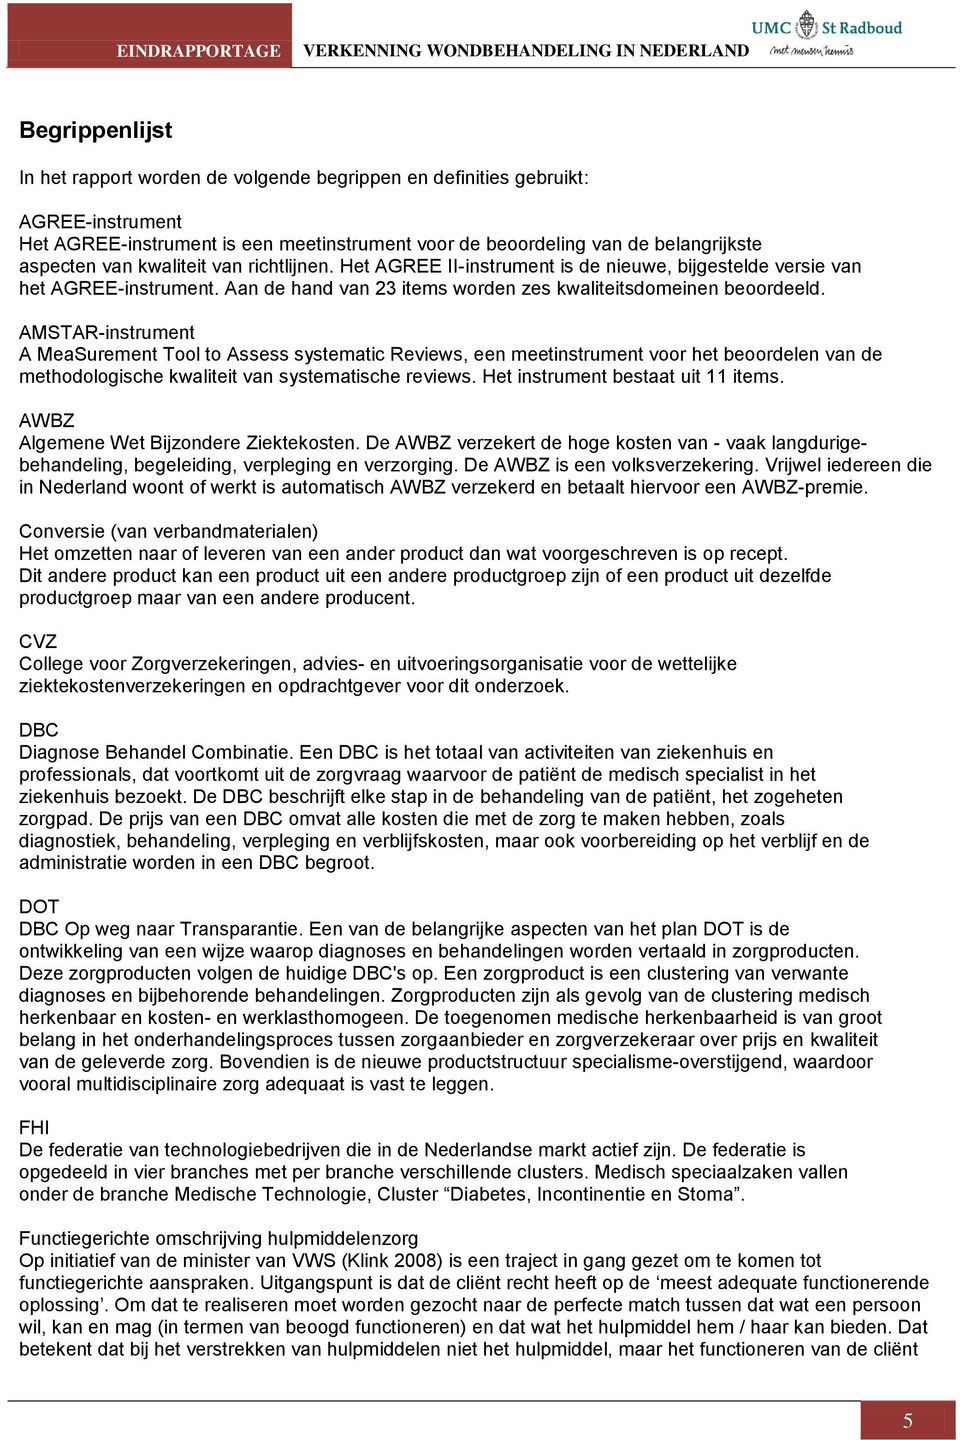 AMSTAR-instrument A MeaSurement Tool to Assess systematic Reviews, een meetinstrument voor het beoordelen van de methodologische kwaliteit van systematische reviews.